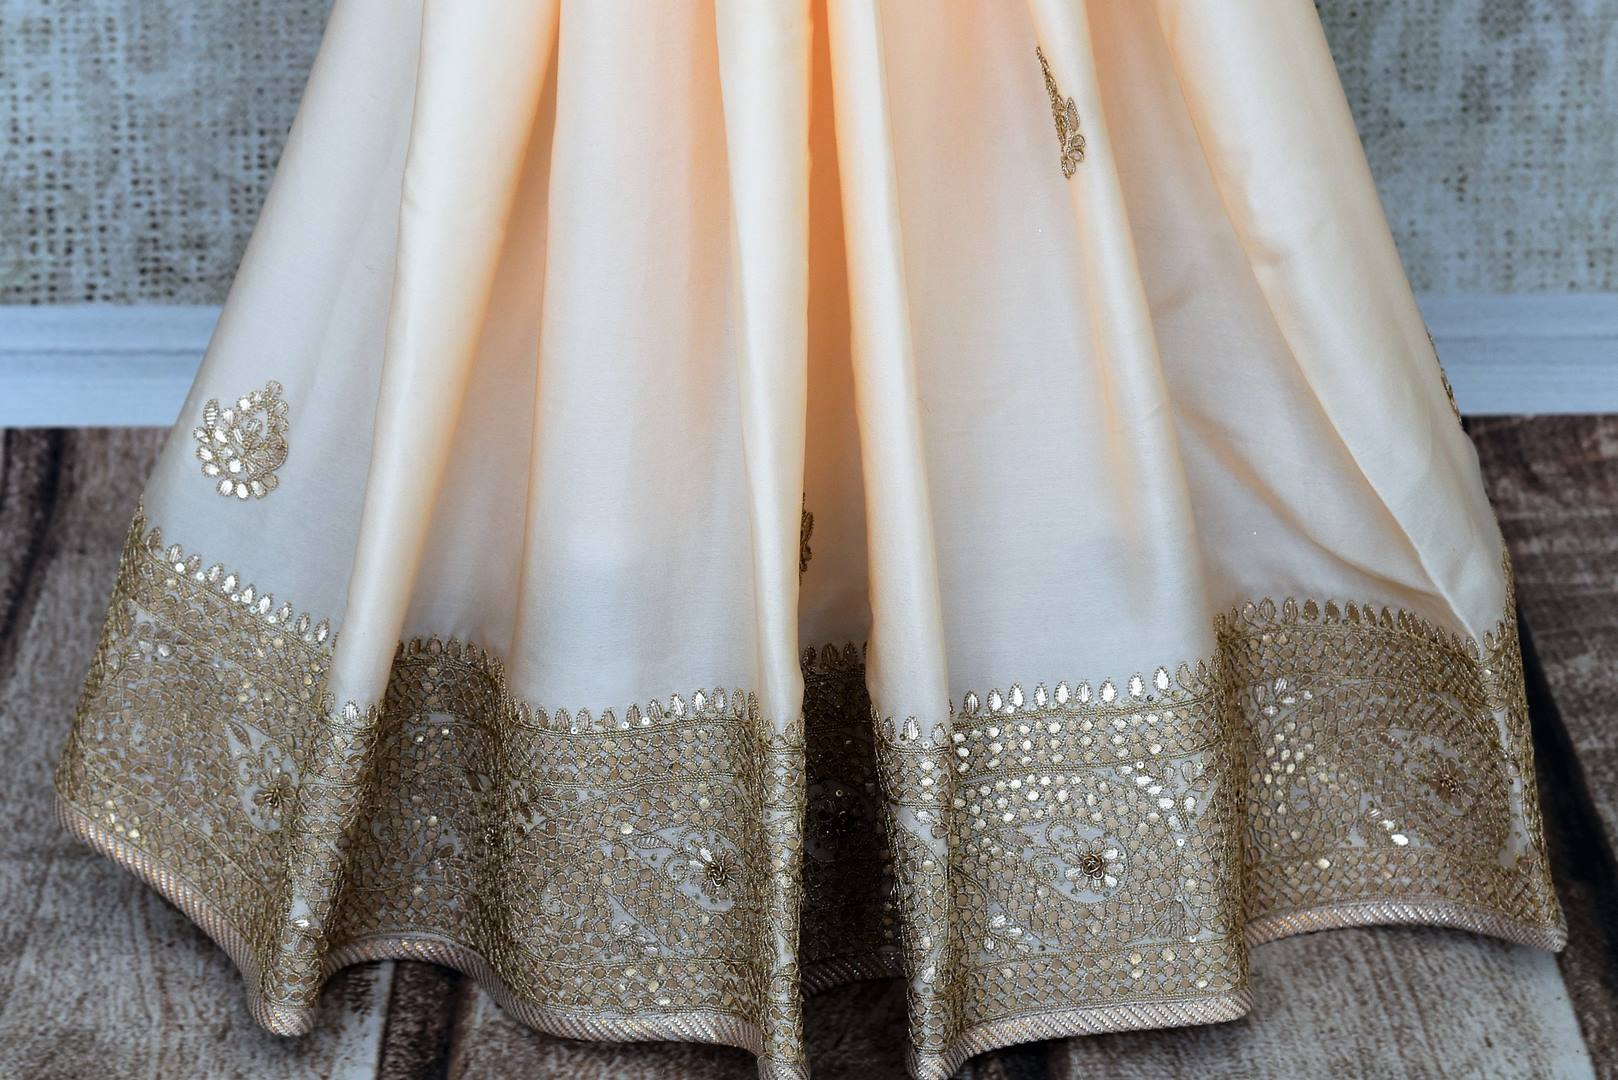 Beautiful cream gota patti embroidered crepe saree buy online in USA.  If you are looking for Indian designer wedding sarees in USA, then Pure Elegance clothing store is your one-stop solution, shop now.-pleats